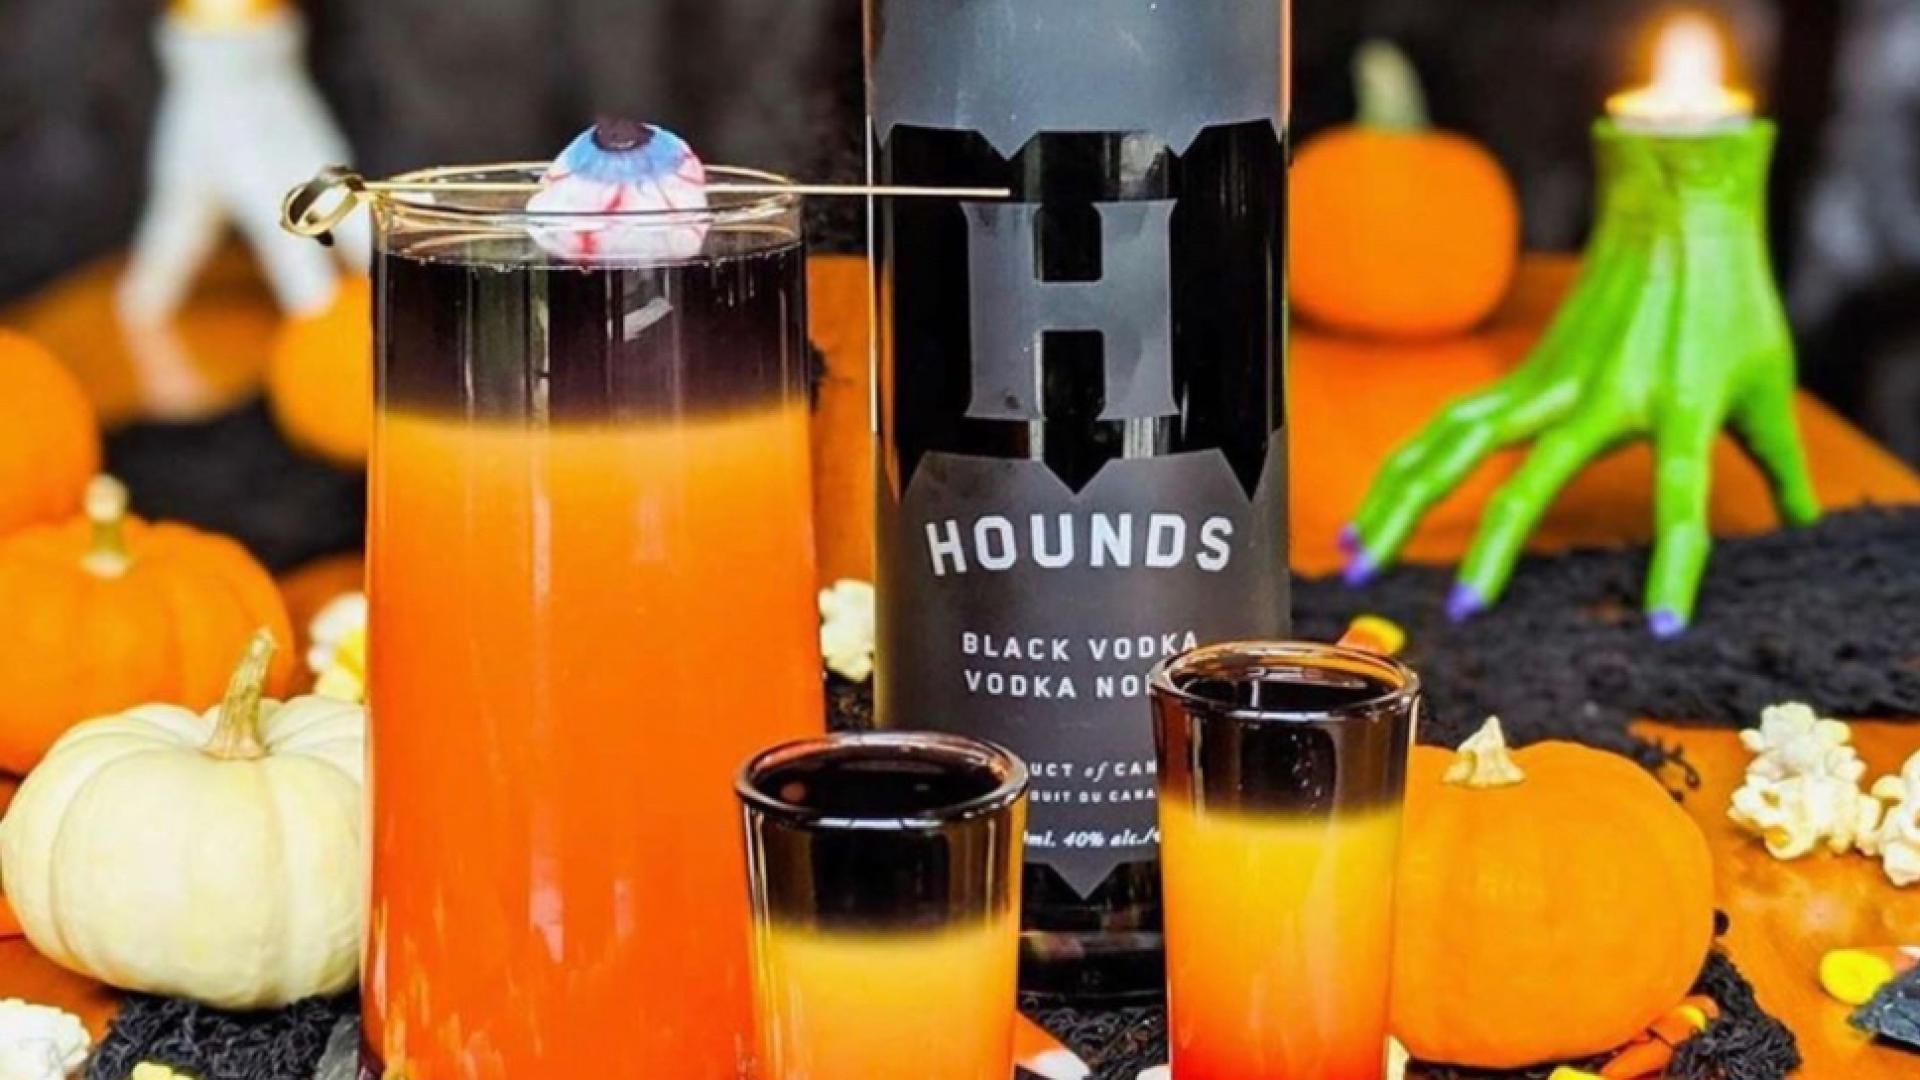 Things to do in Toronto this October | Hounds Black Vodka Halloween cocktails